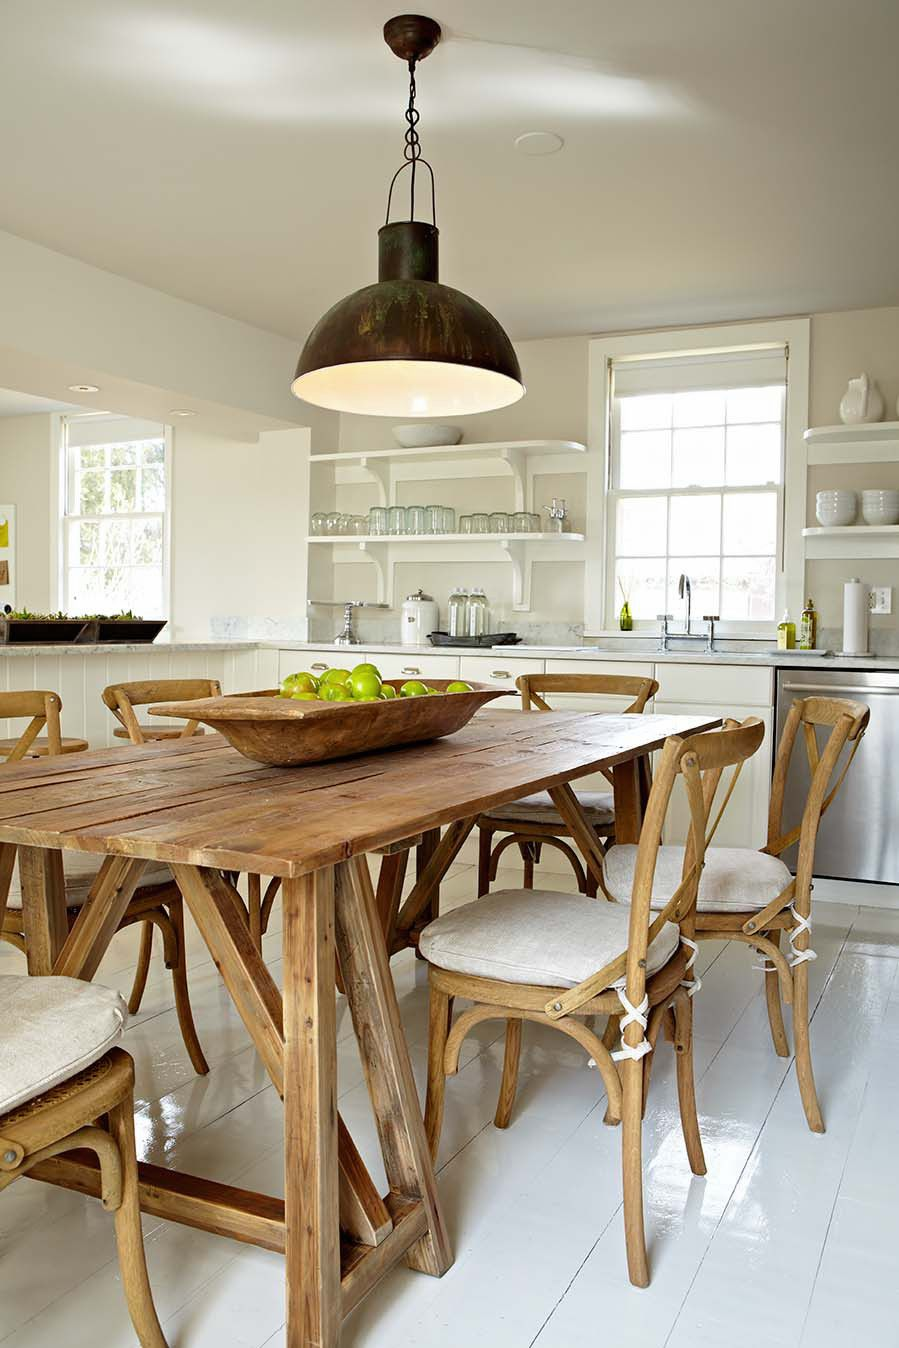 Kelly and co design guest house my kitchen pinterest houses